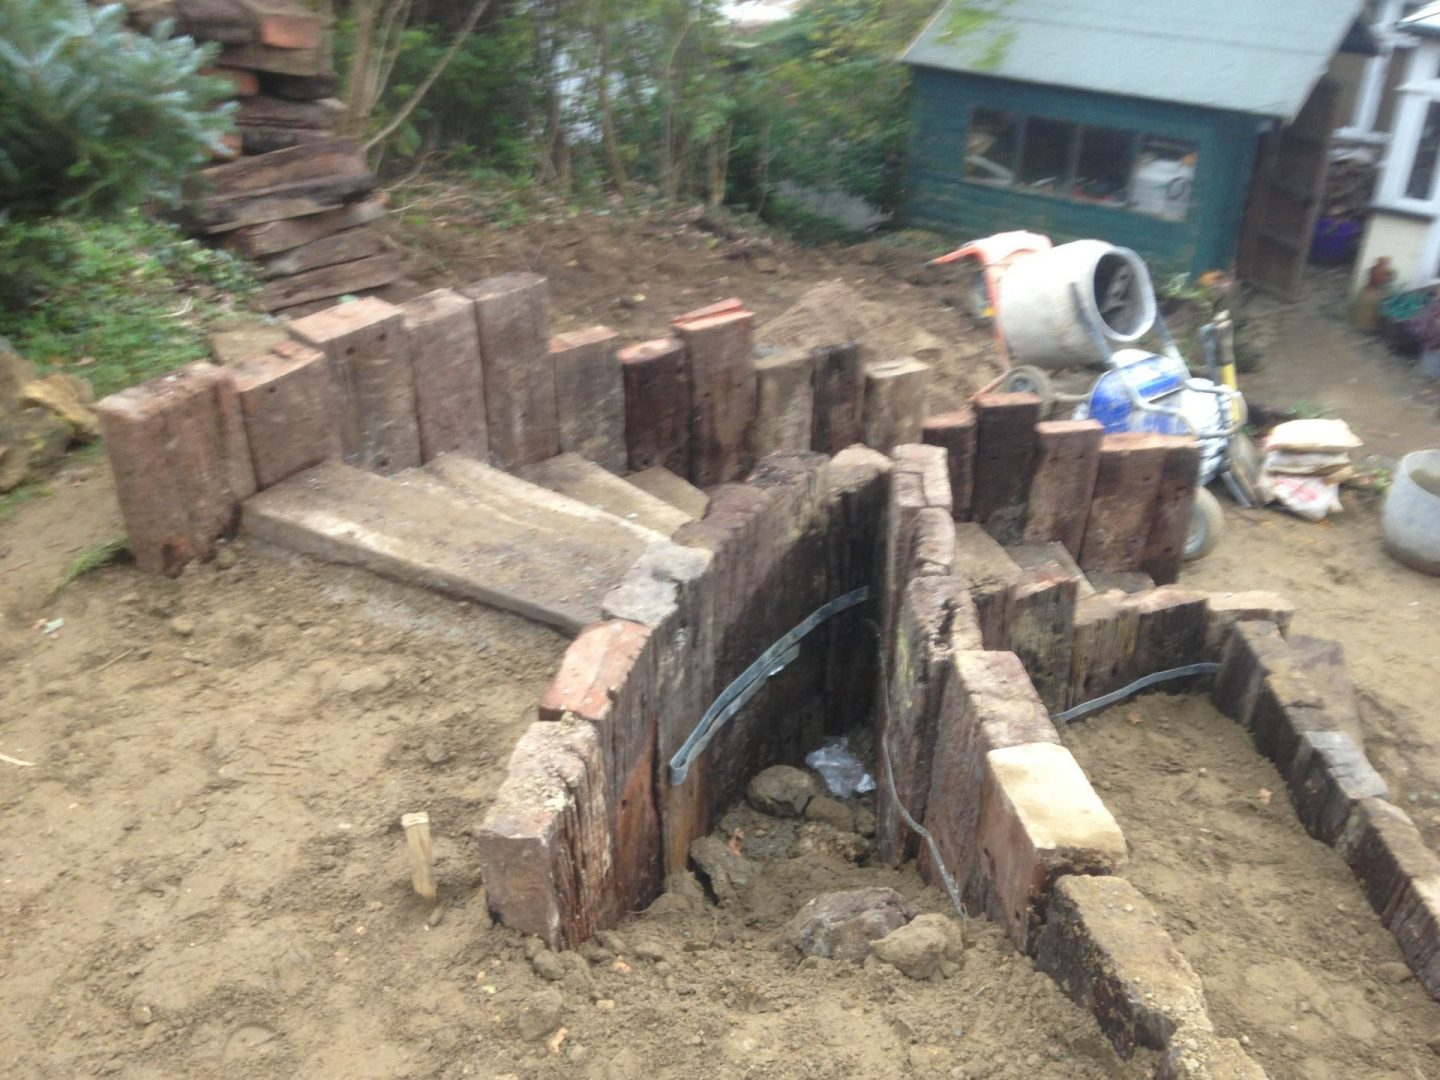 The beginnings of a sweeping garden staircase made from railway sleepers